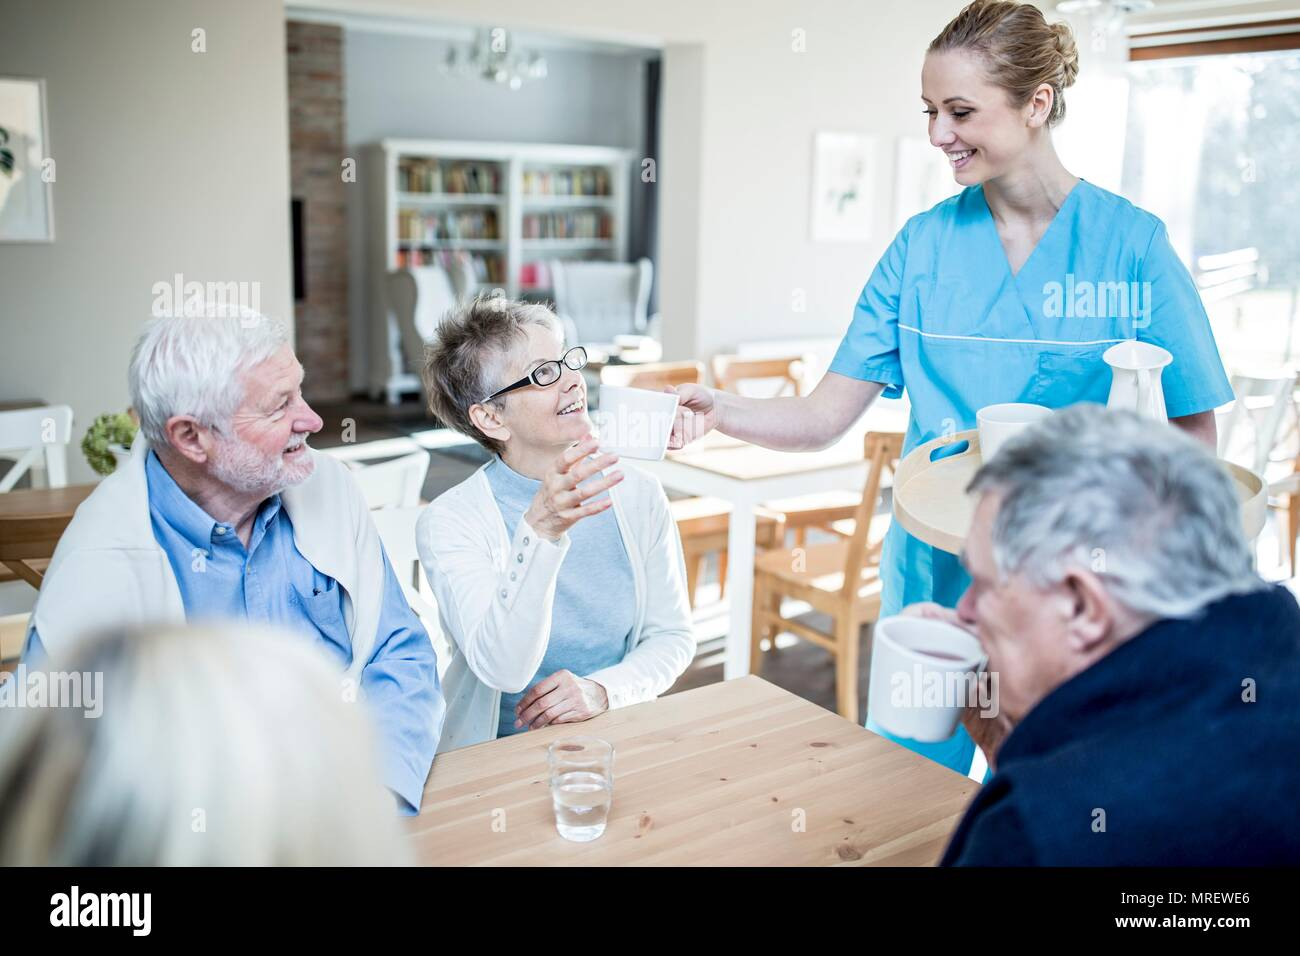 Care worker serving tea to senior woman in care home. - Stock Image